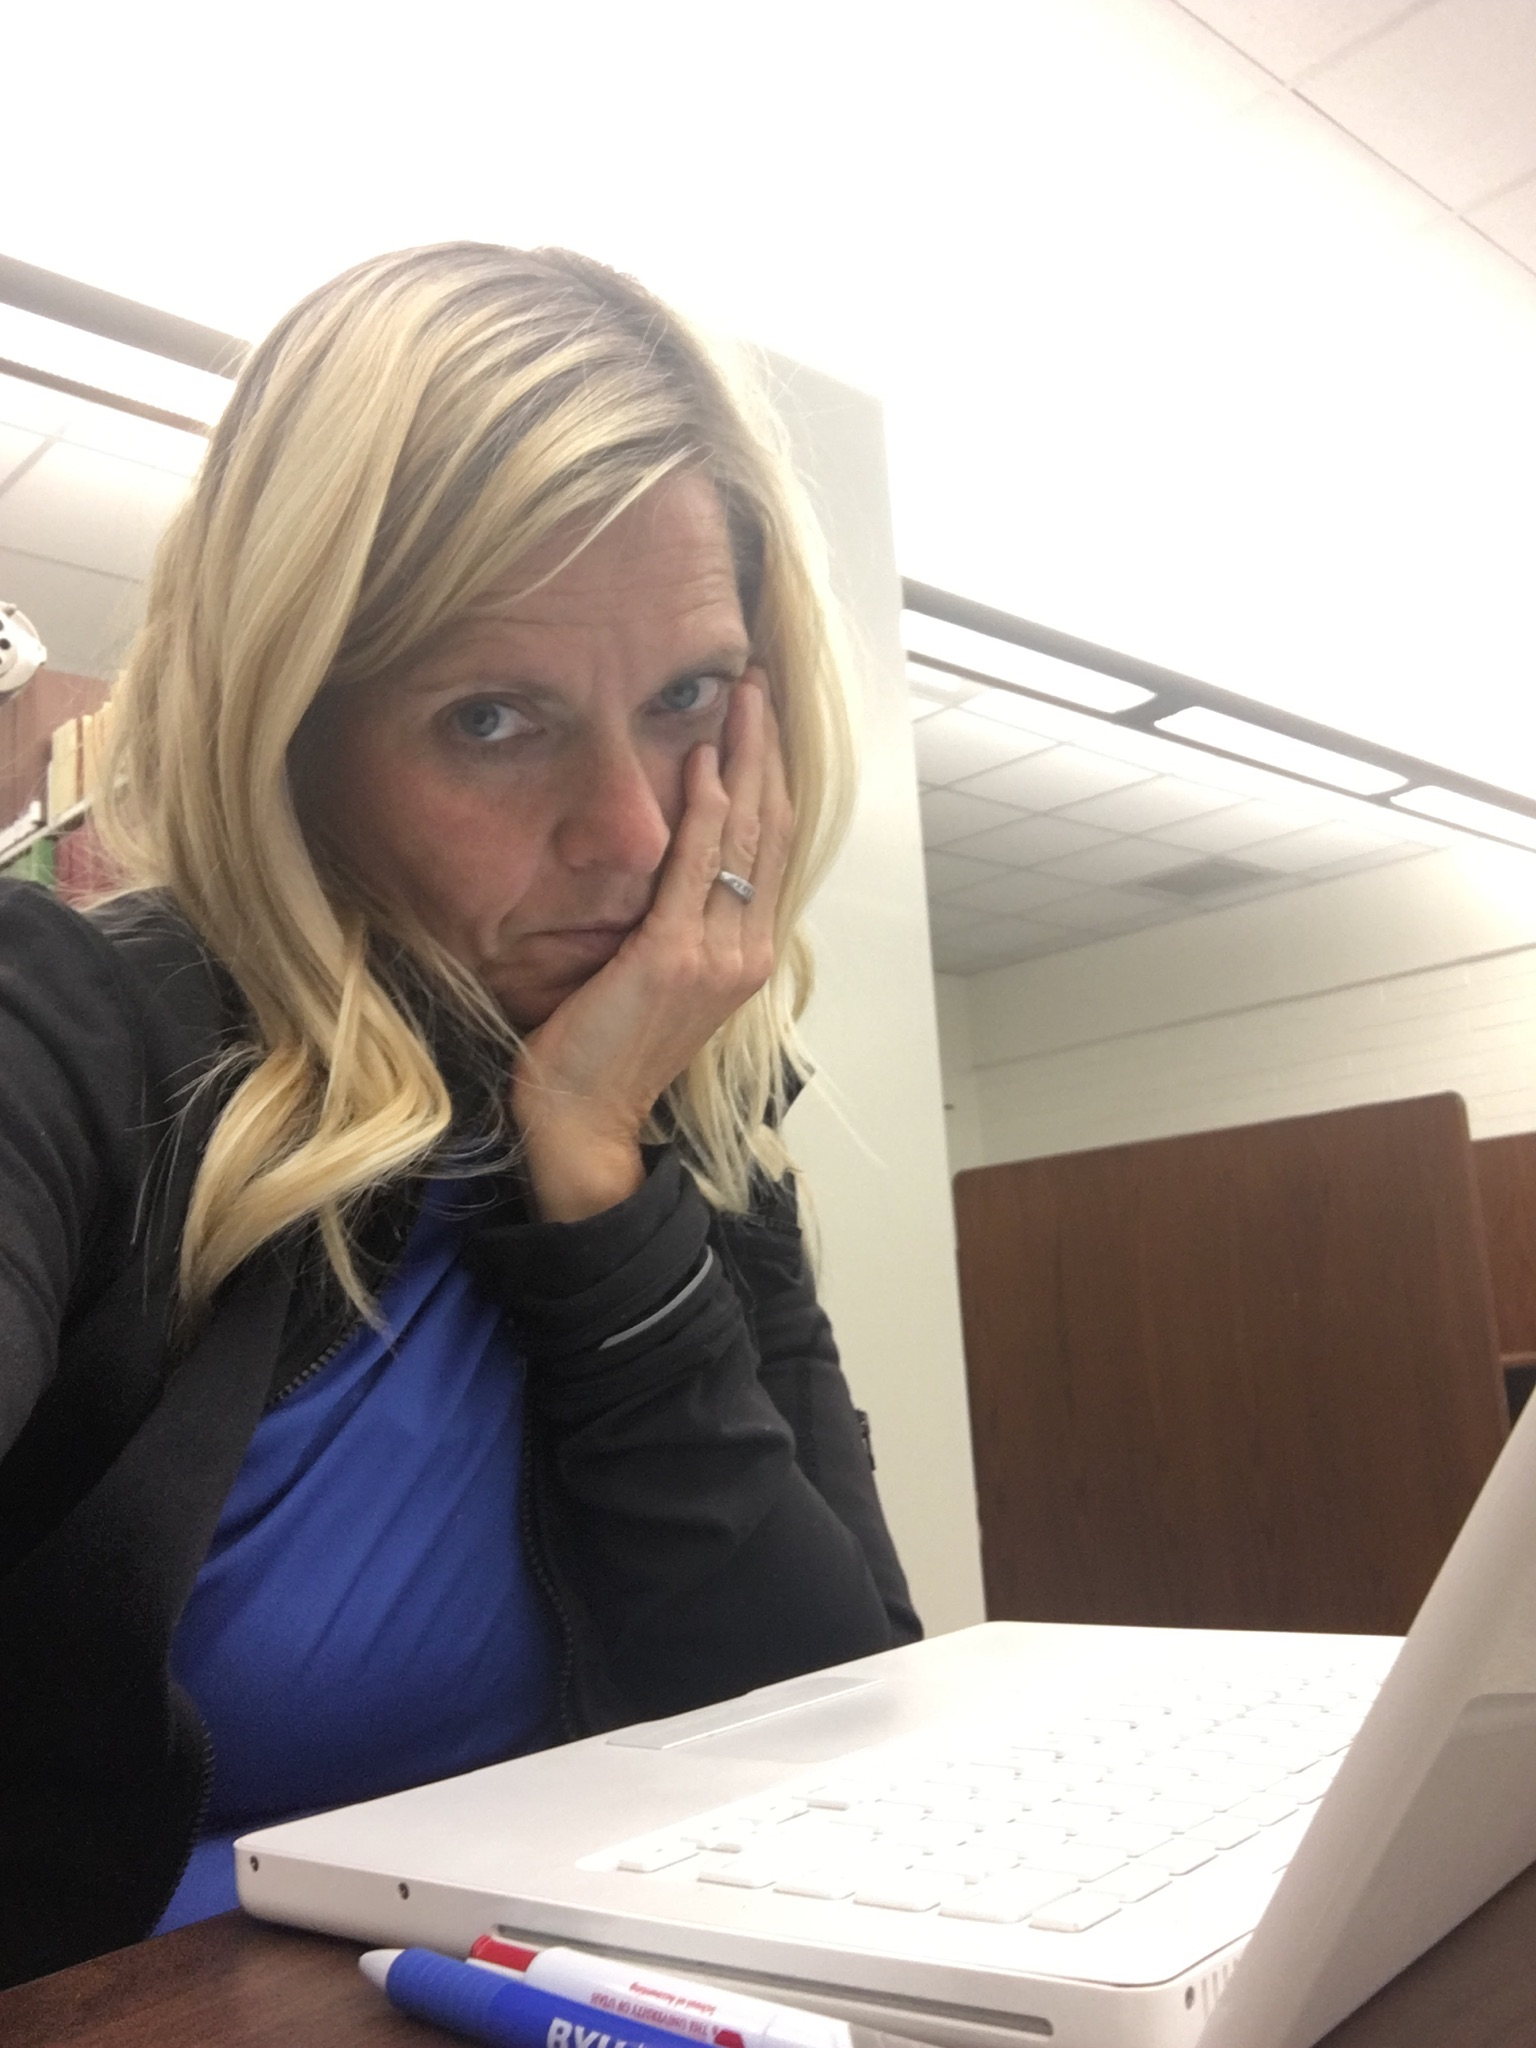 Rolayne Waldron takes a selfie while studying on campus at BYU-Idaho. Rolayne returned to school at BYU-Idaho after completing the PathwayConnect program.